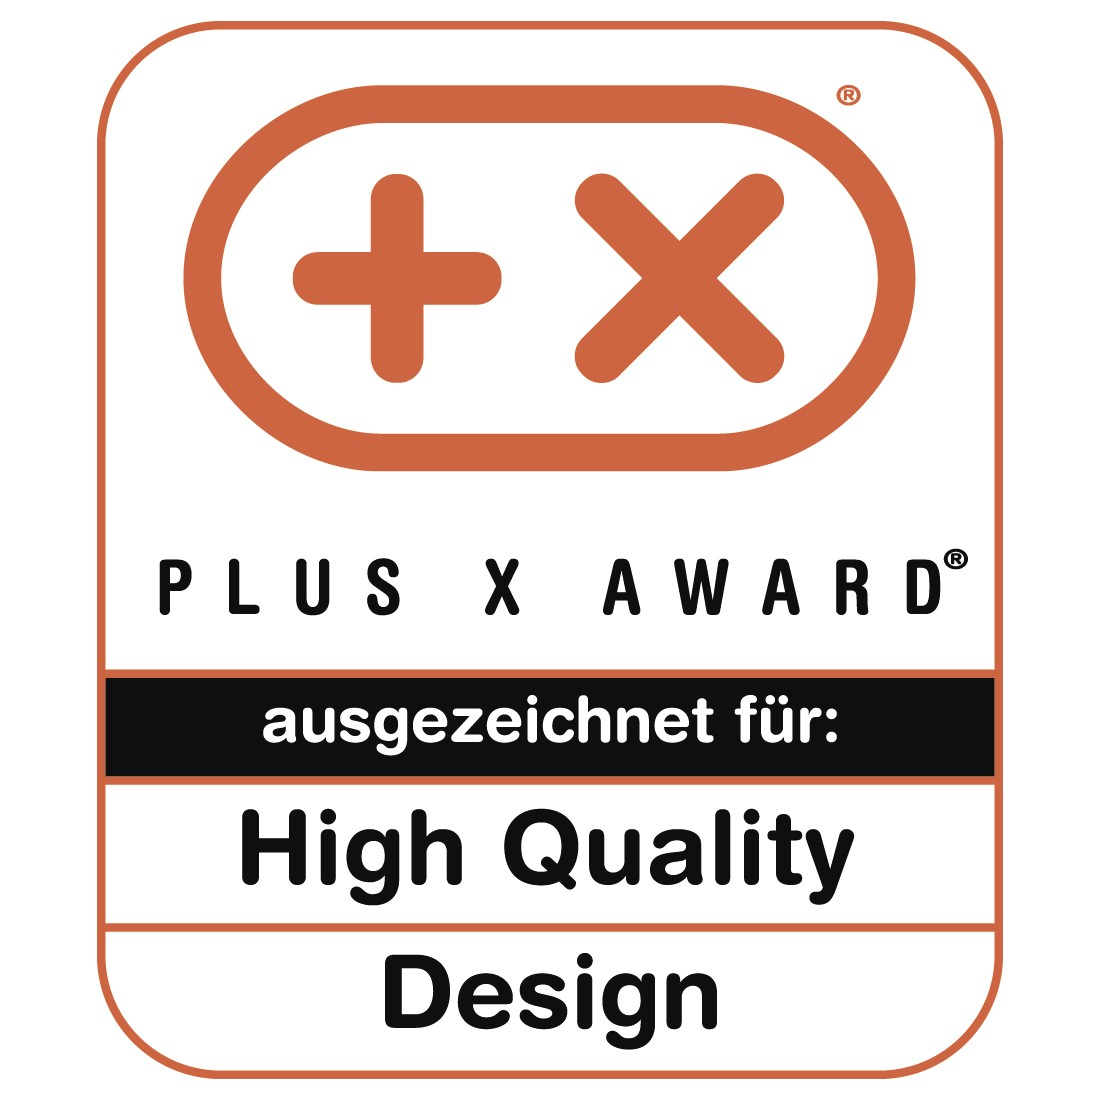 tex4 Druckfähiges Testurteil 4 - Avinity, High Speed HDMI™-Kabel, St. - St., Filter, oval, vergoldet, Ethernet, 1 m